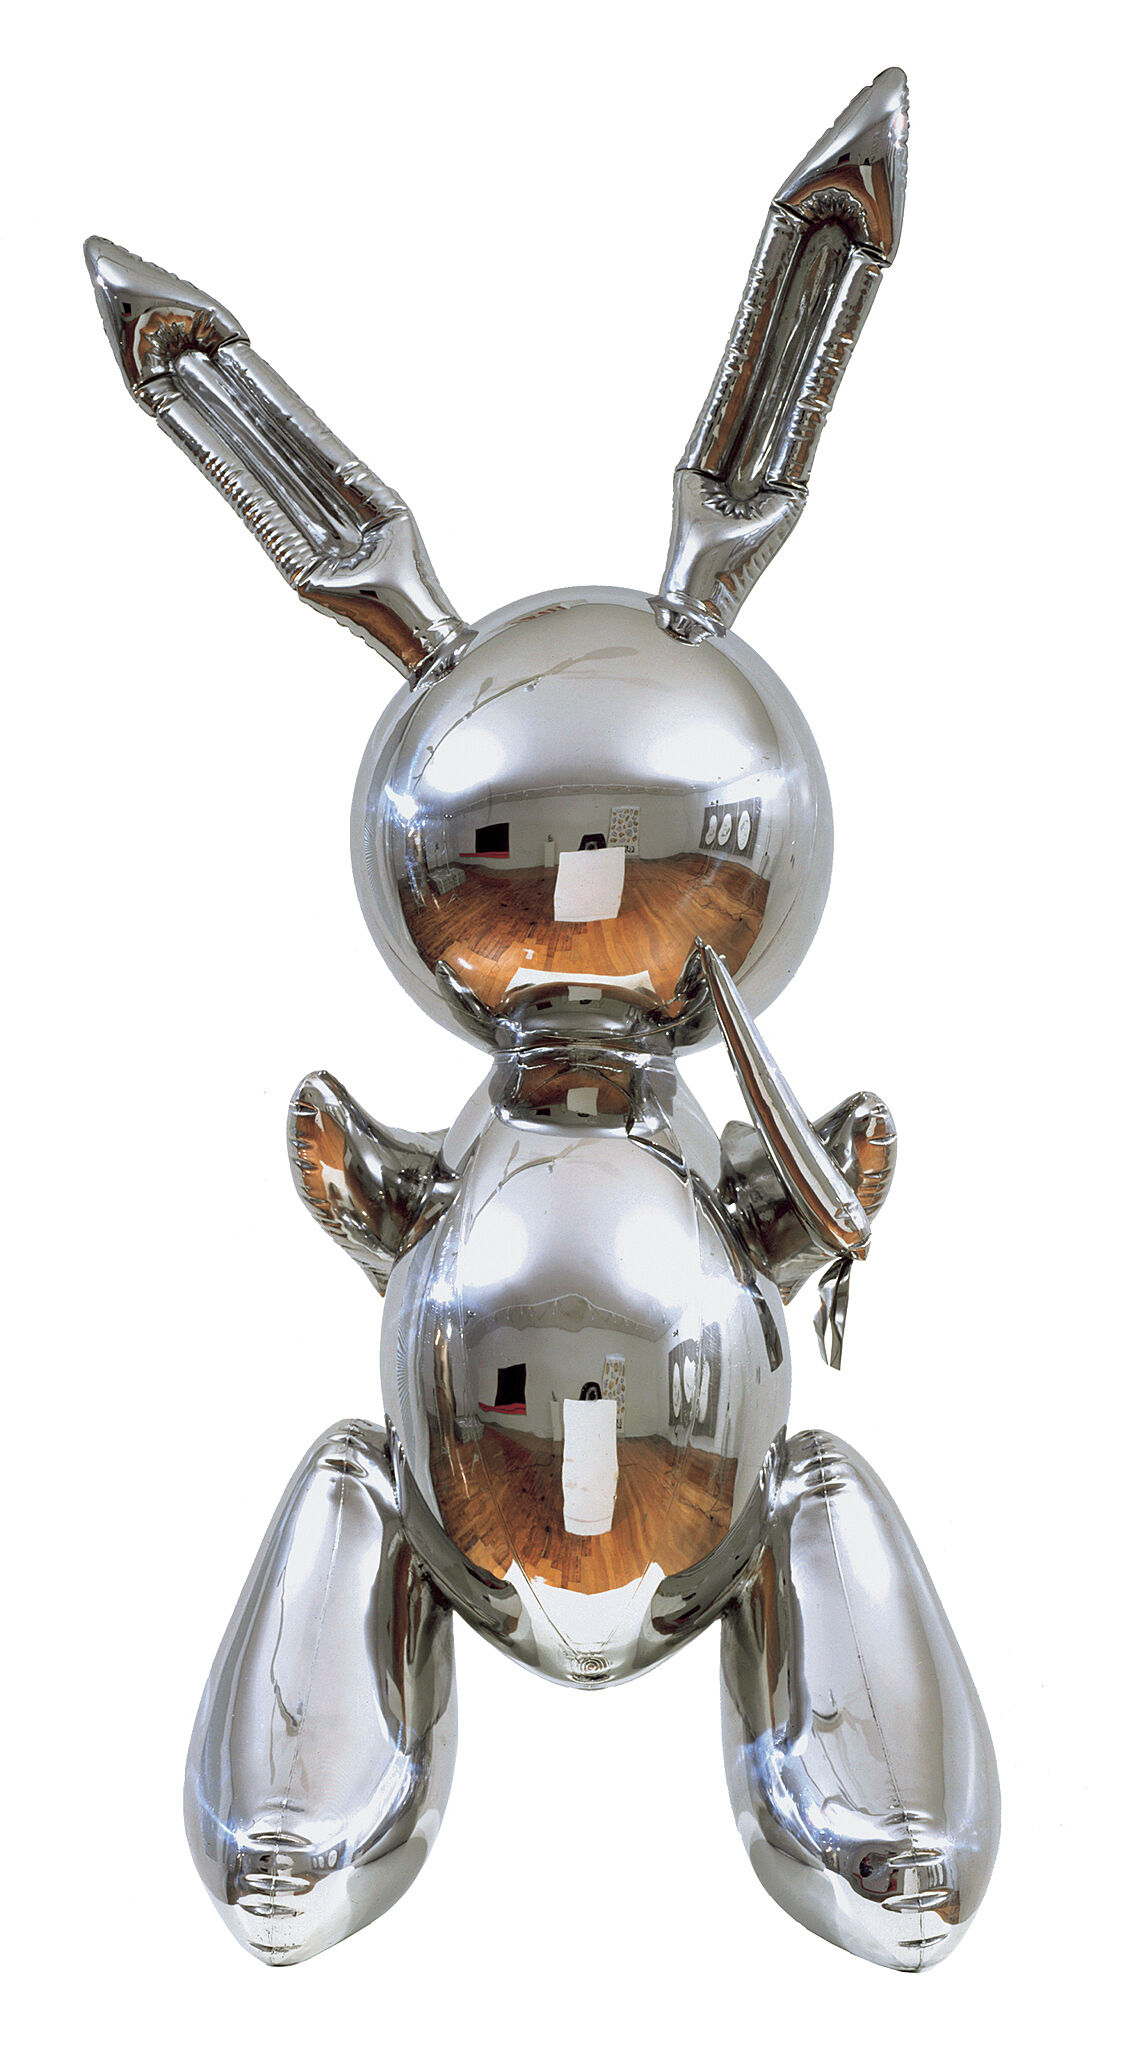 A steel sculpture in the shape of an upright bunny.